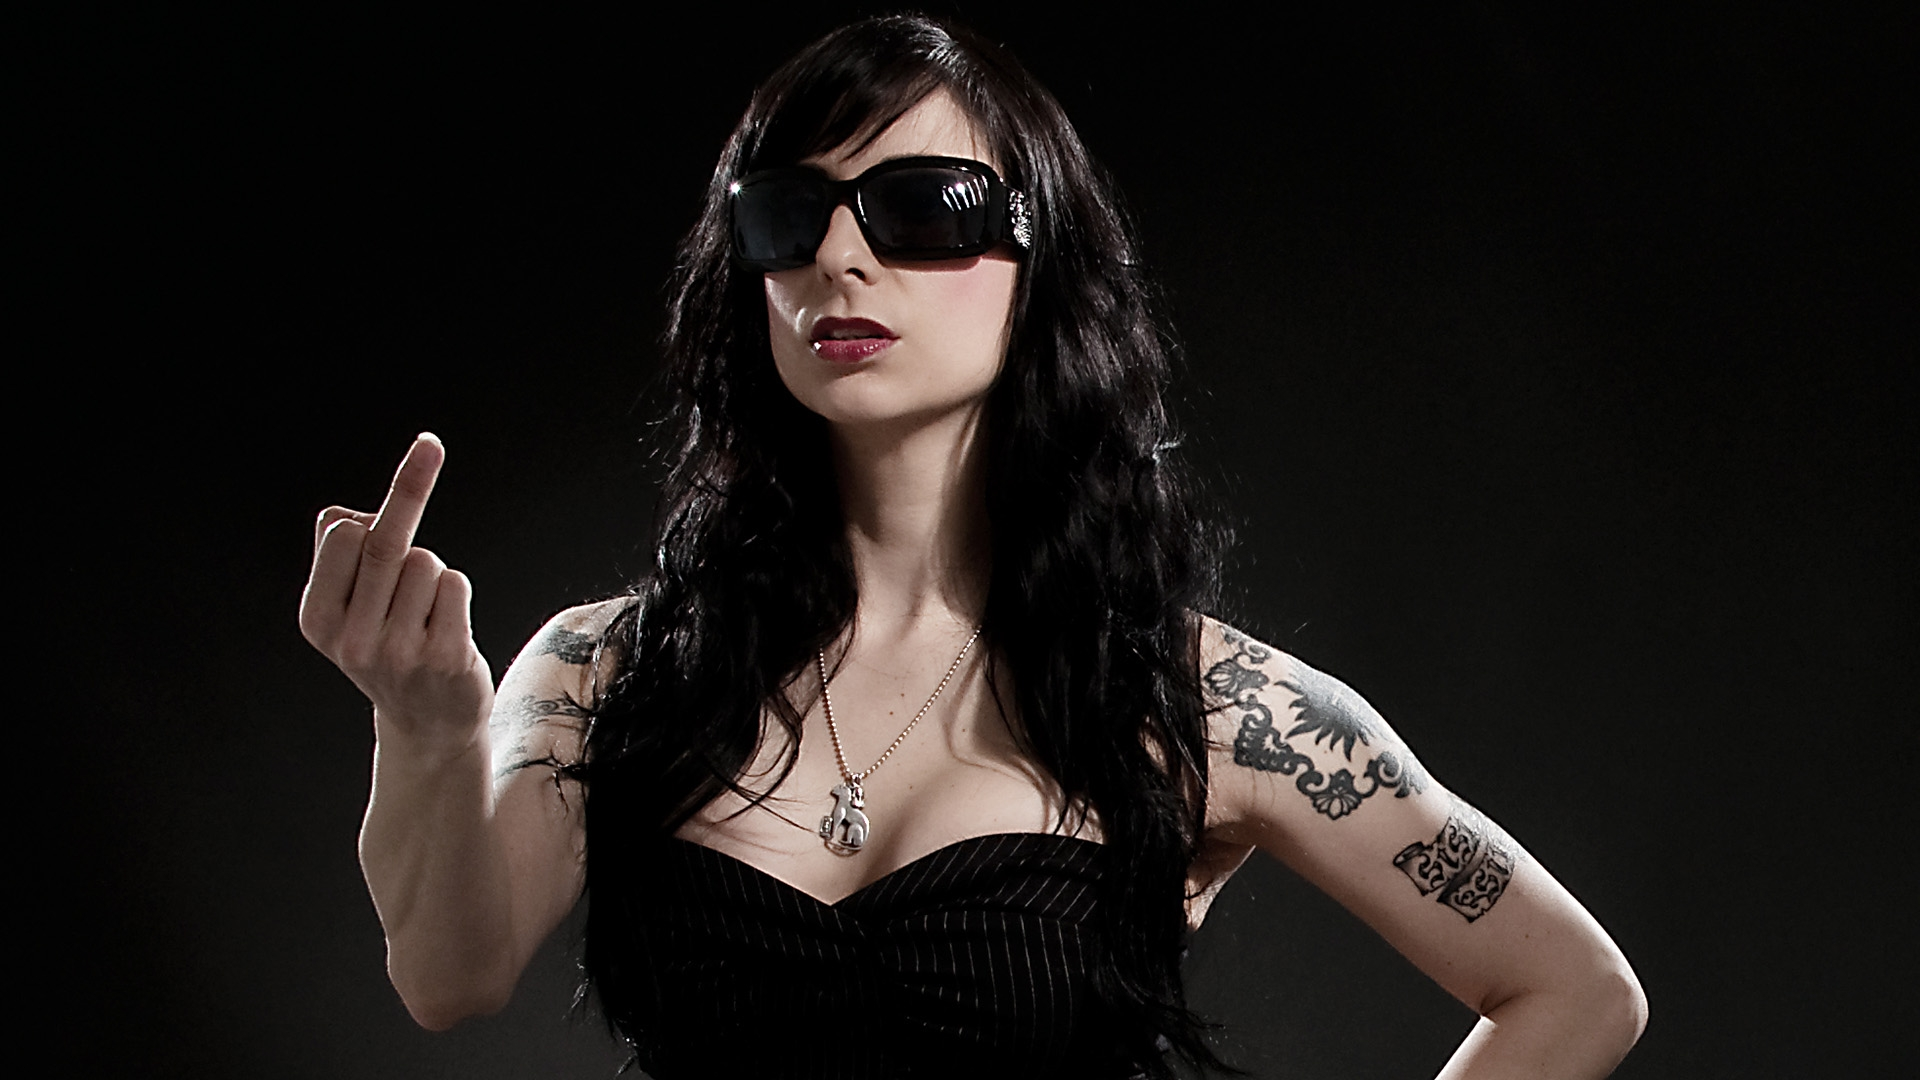 Tattoo Girl Wallpapers High Quality